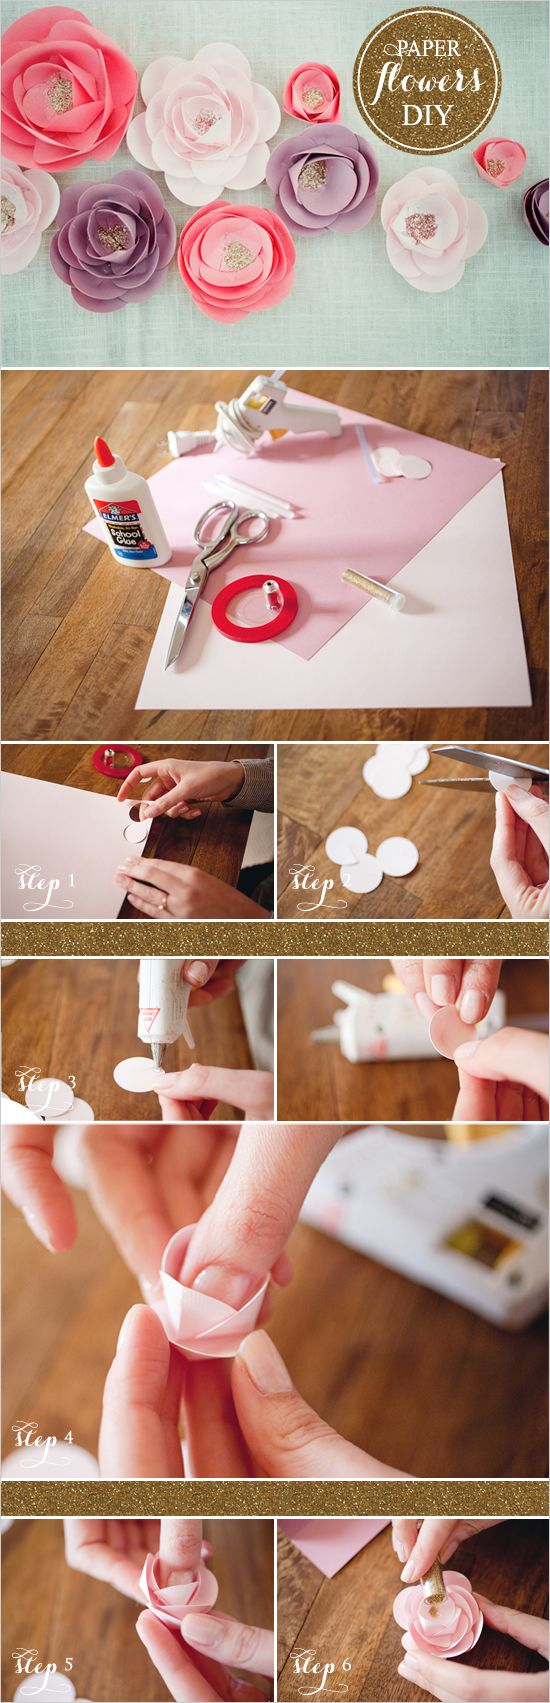 diy flowers. Instructions in link